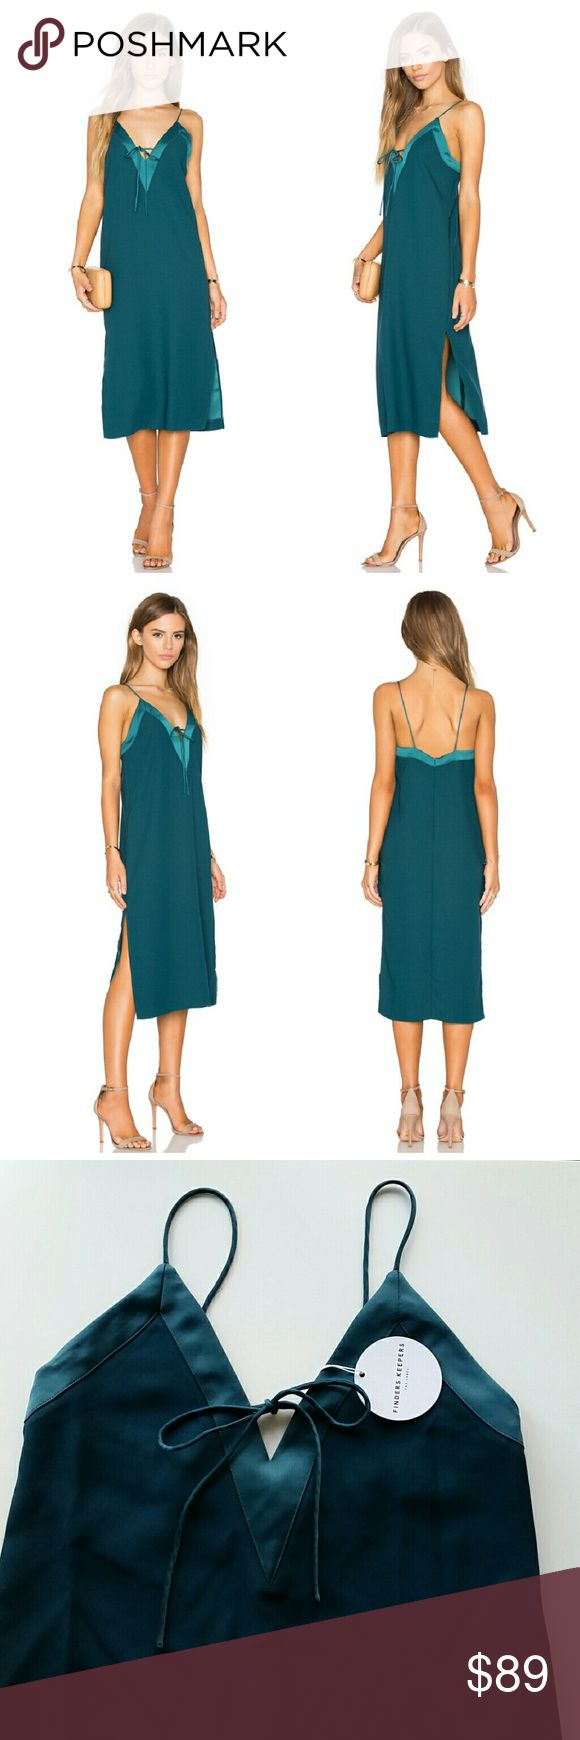 """Finders Keepers Yesterday Midi Dress Finders Keepers Yesterday Dress  *Petrol - Dark emerald green color *Size XS - Pit to pit : 16"""" flat / Length : 42"""" *Double side slits / Zipper in the back for open and close  *100% polyester / Hand wash recommended  *New with tags  *No trade Finders Keepers Dresses Midi"""